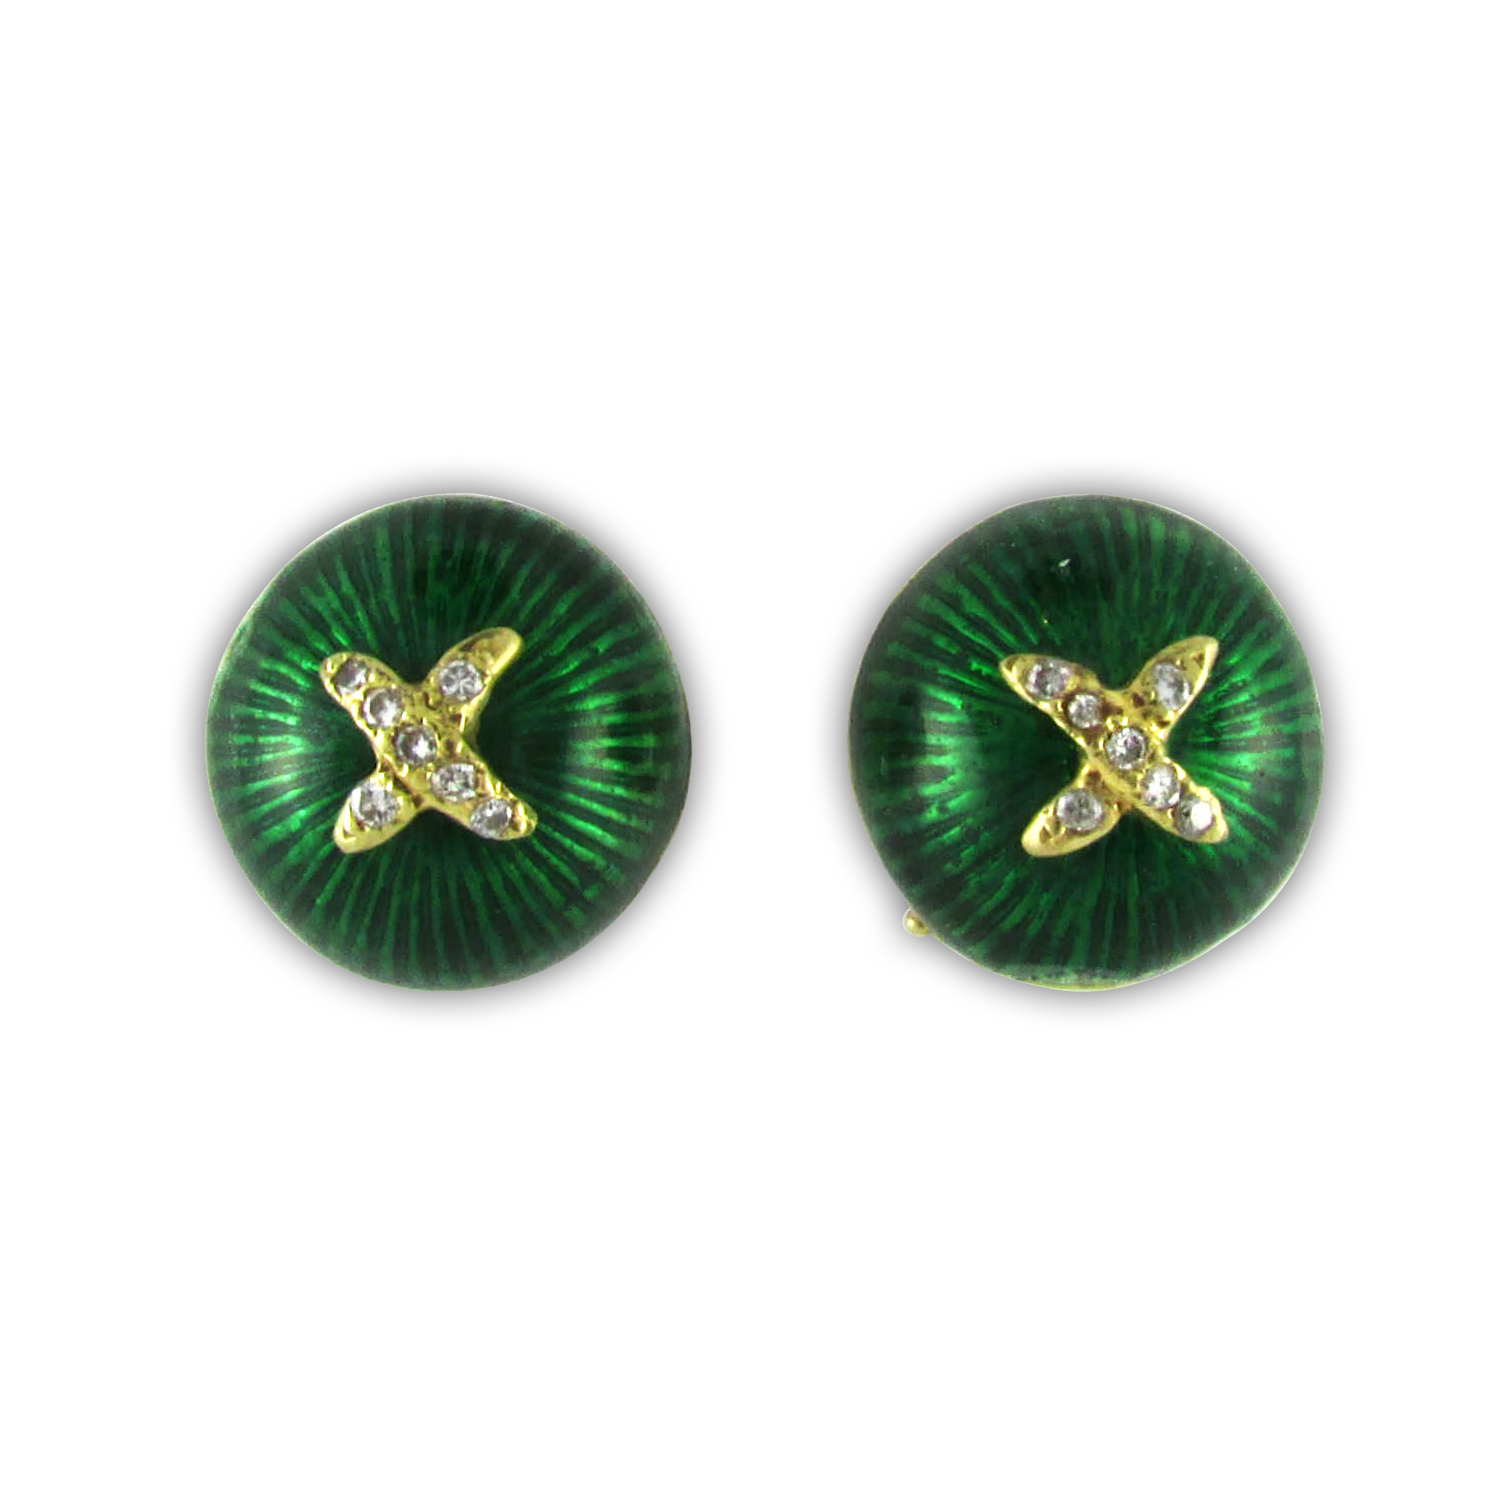 Green Enamel and Diamond Stud Earrings by Hidalgo